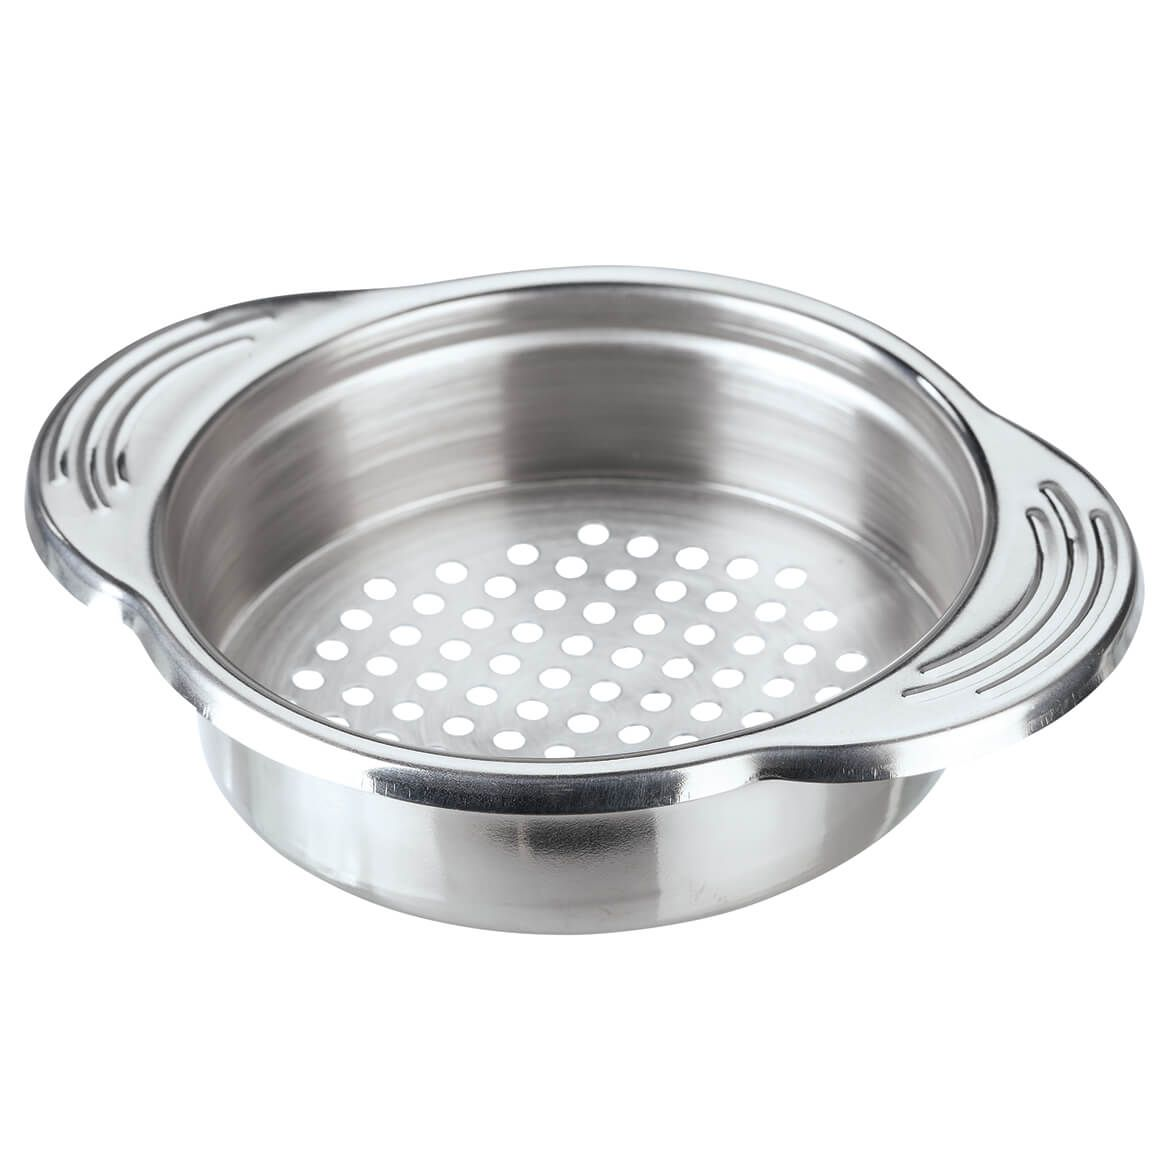 Universal Stainless Can and Jar Strainer by Home Marketplace-370581